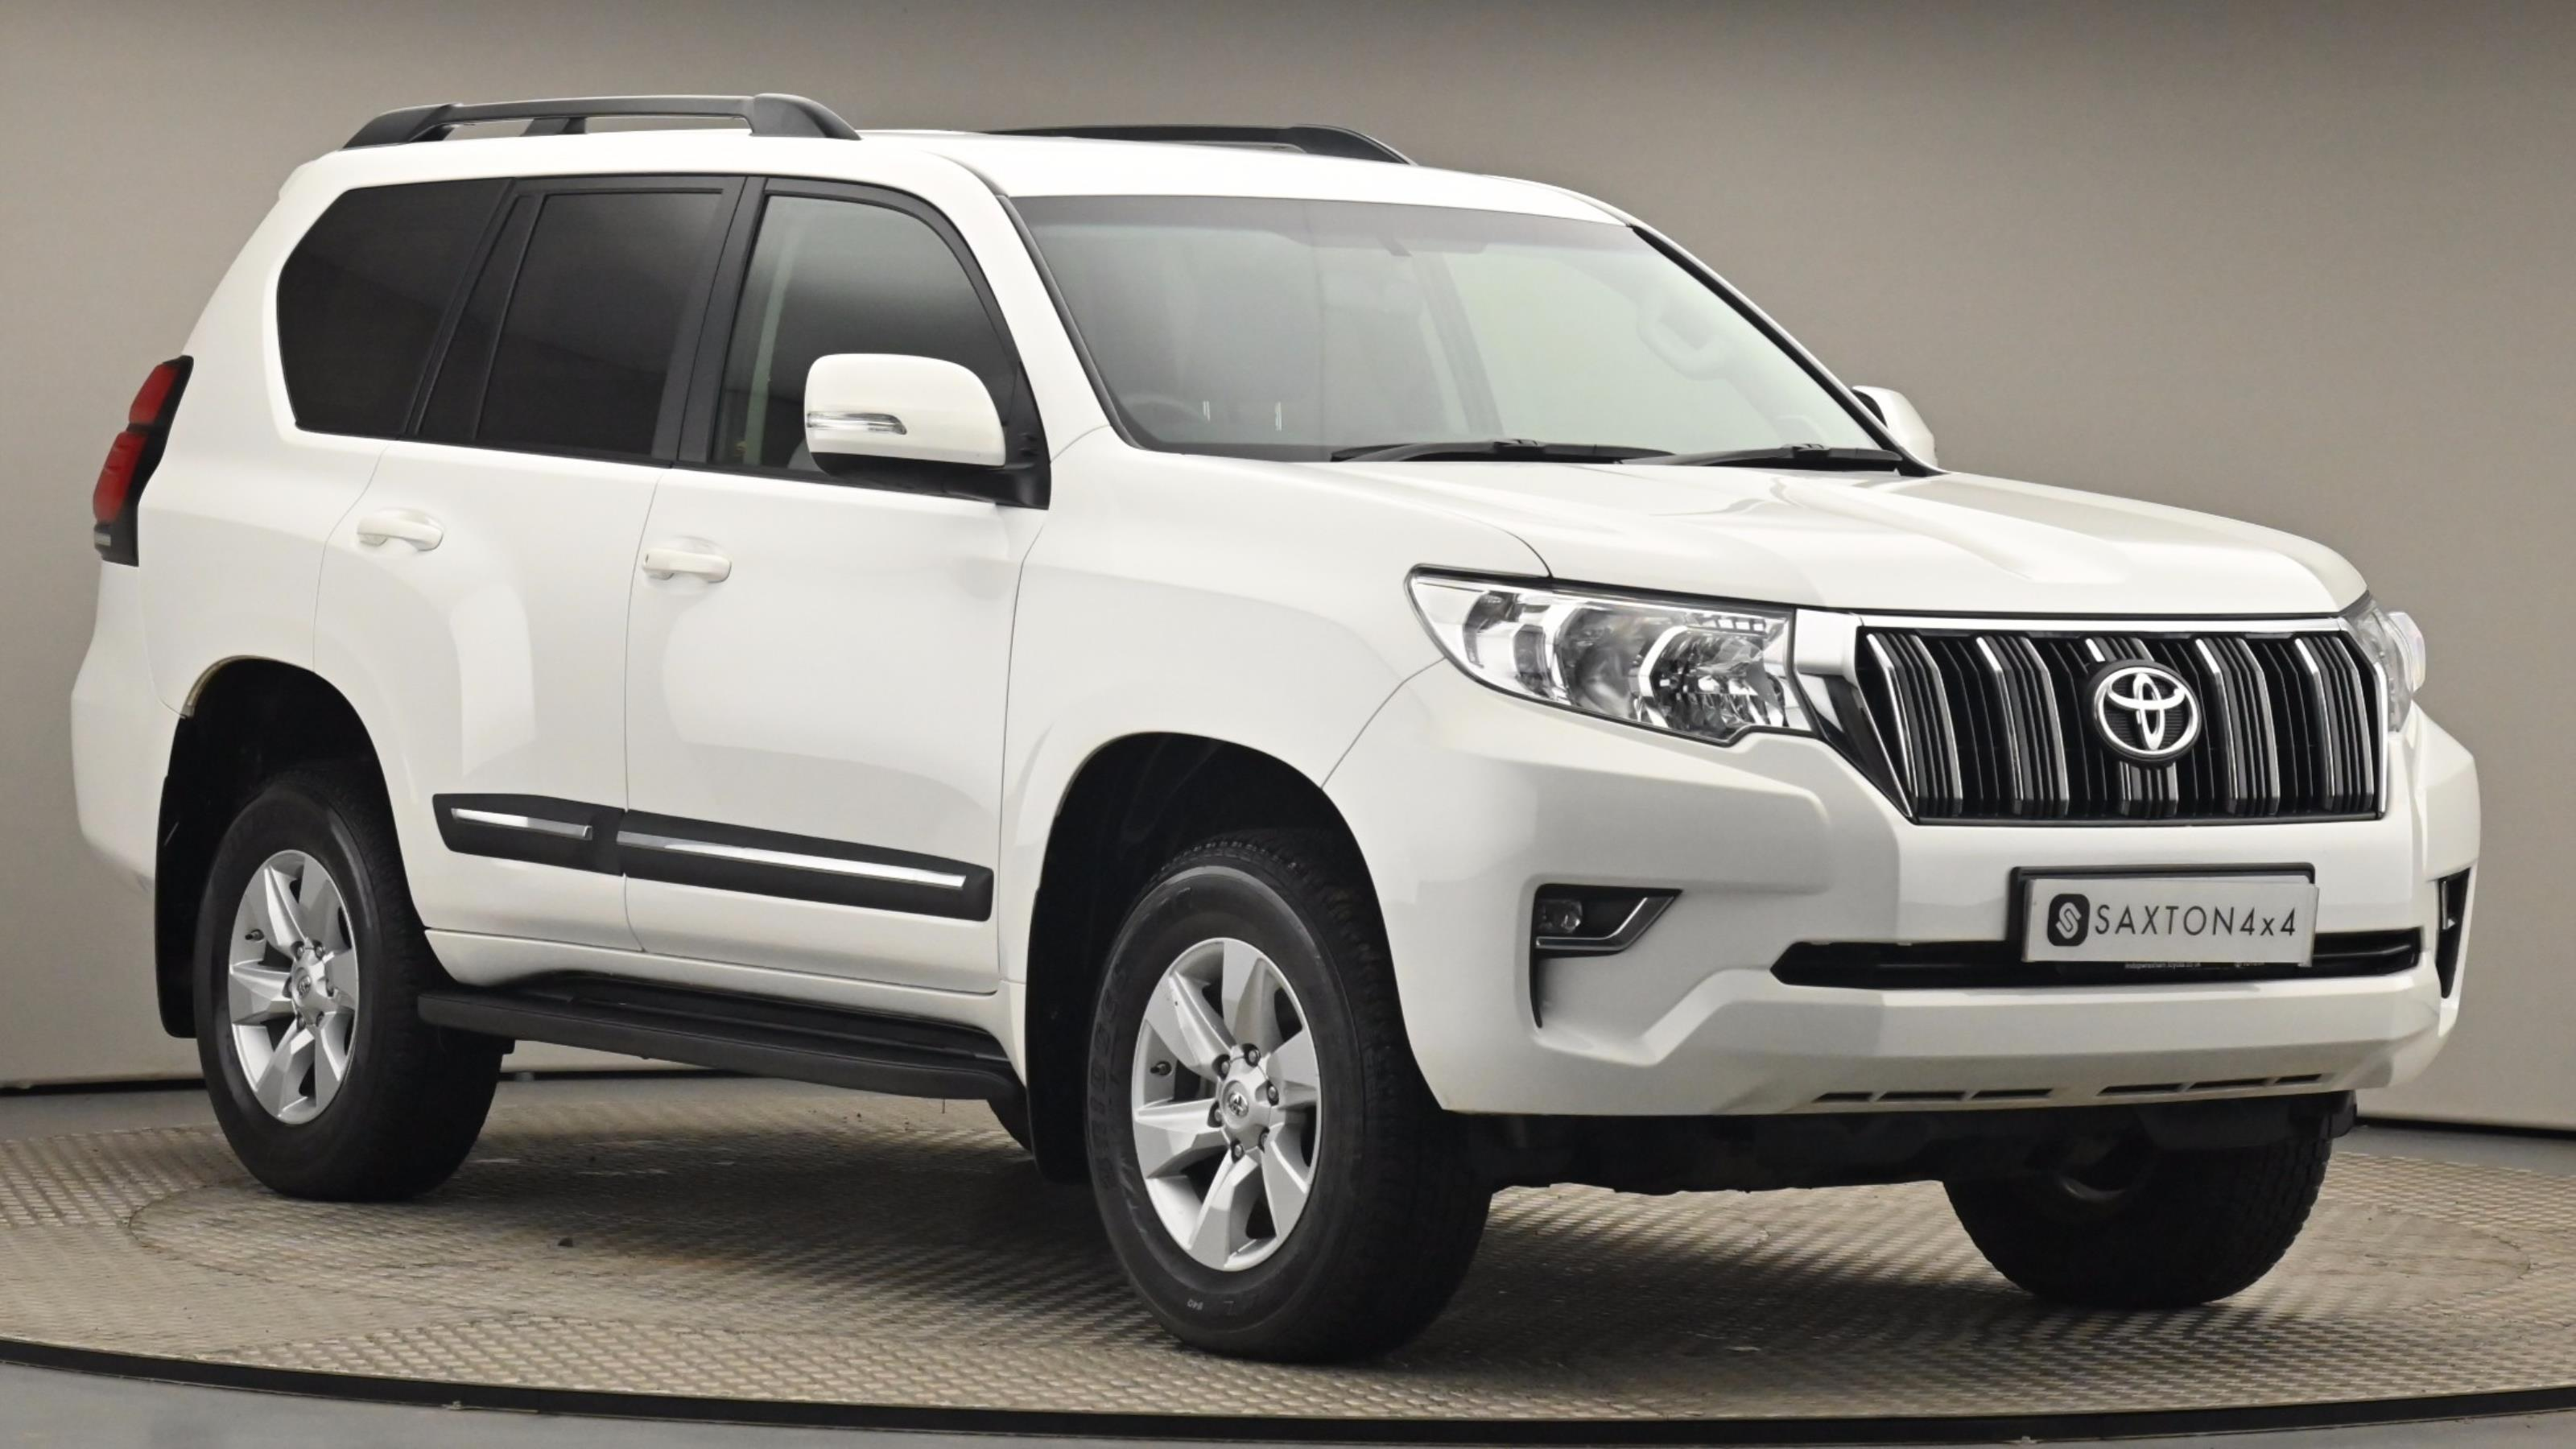 Used 2019 Toyota LAND CRUISER 2.8 D-4D Active 5dr Auto 7 Seats WHITE at Saxton4x4